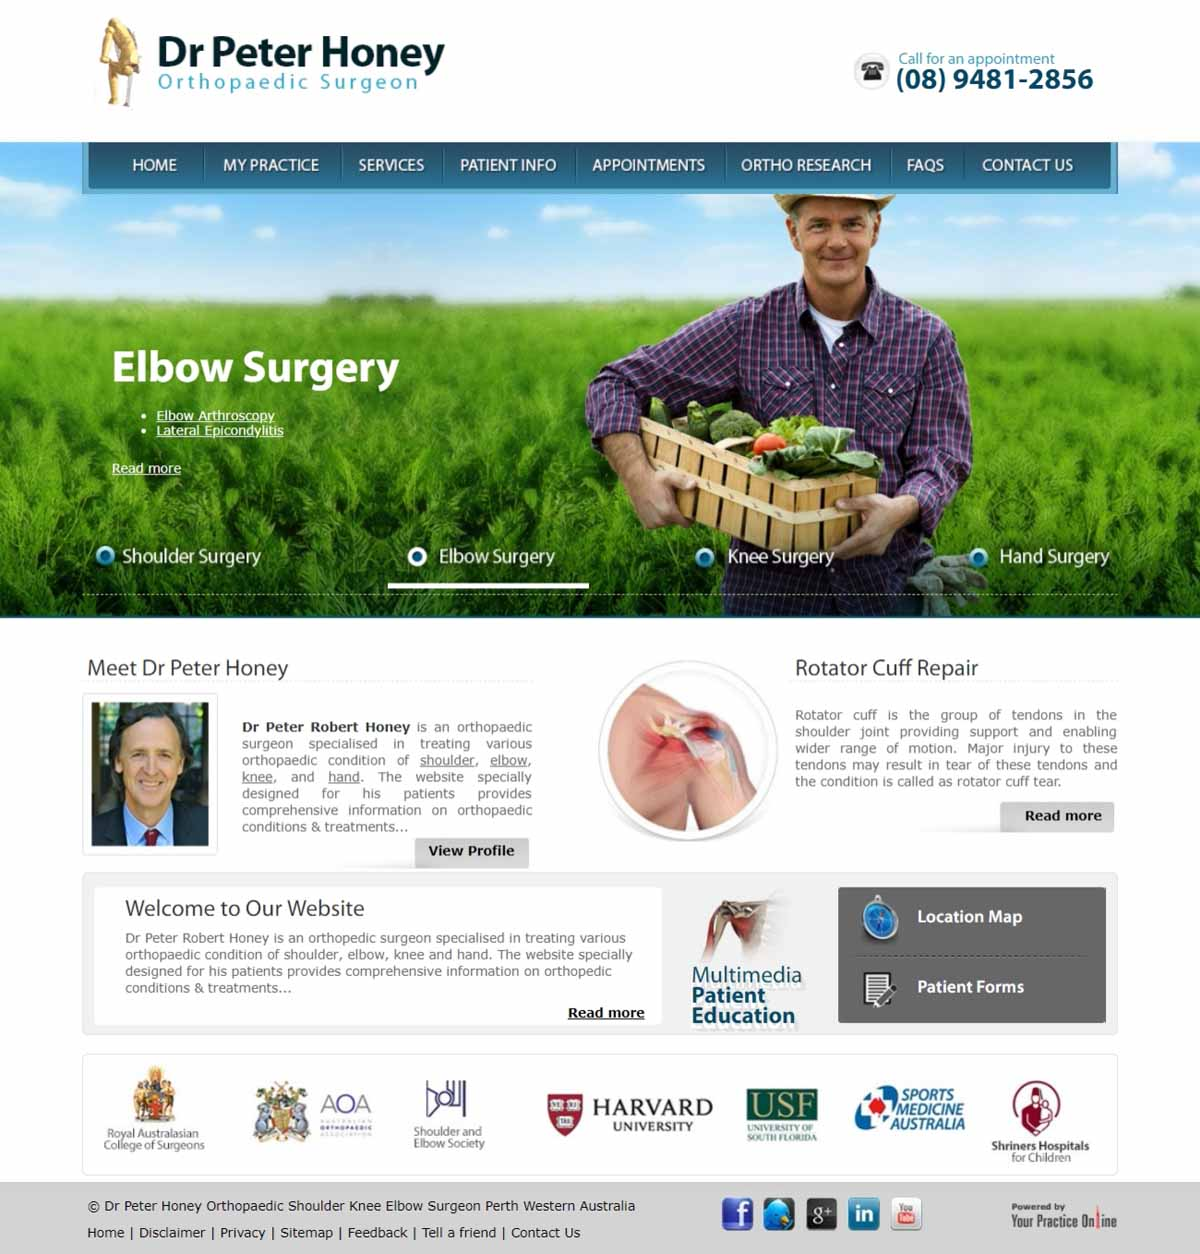 Website for Perth Orthopaedic Shoulder & Elbow Surgeon